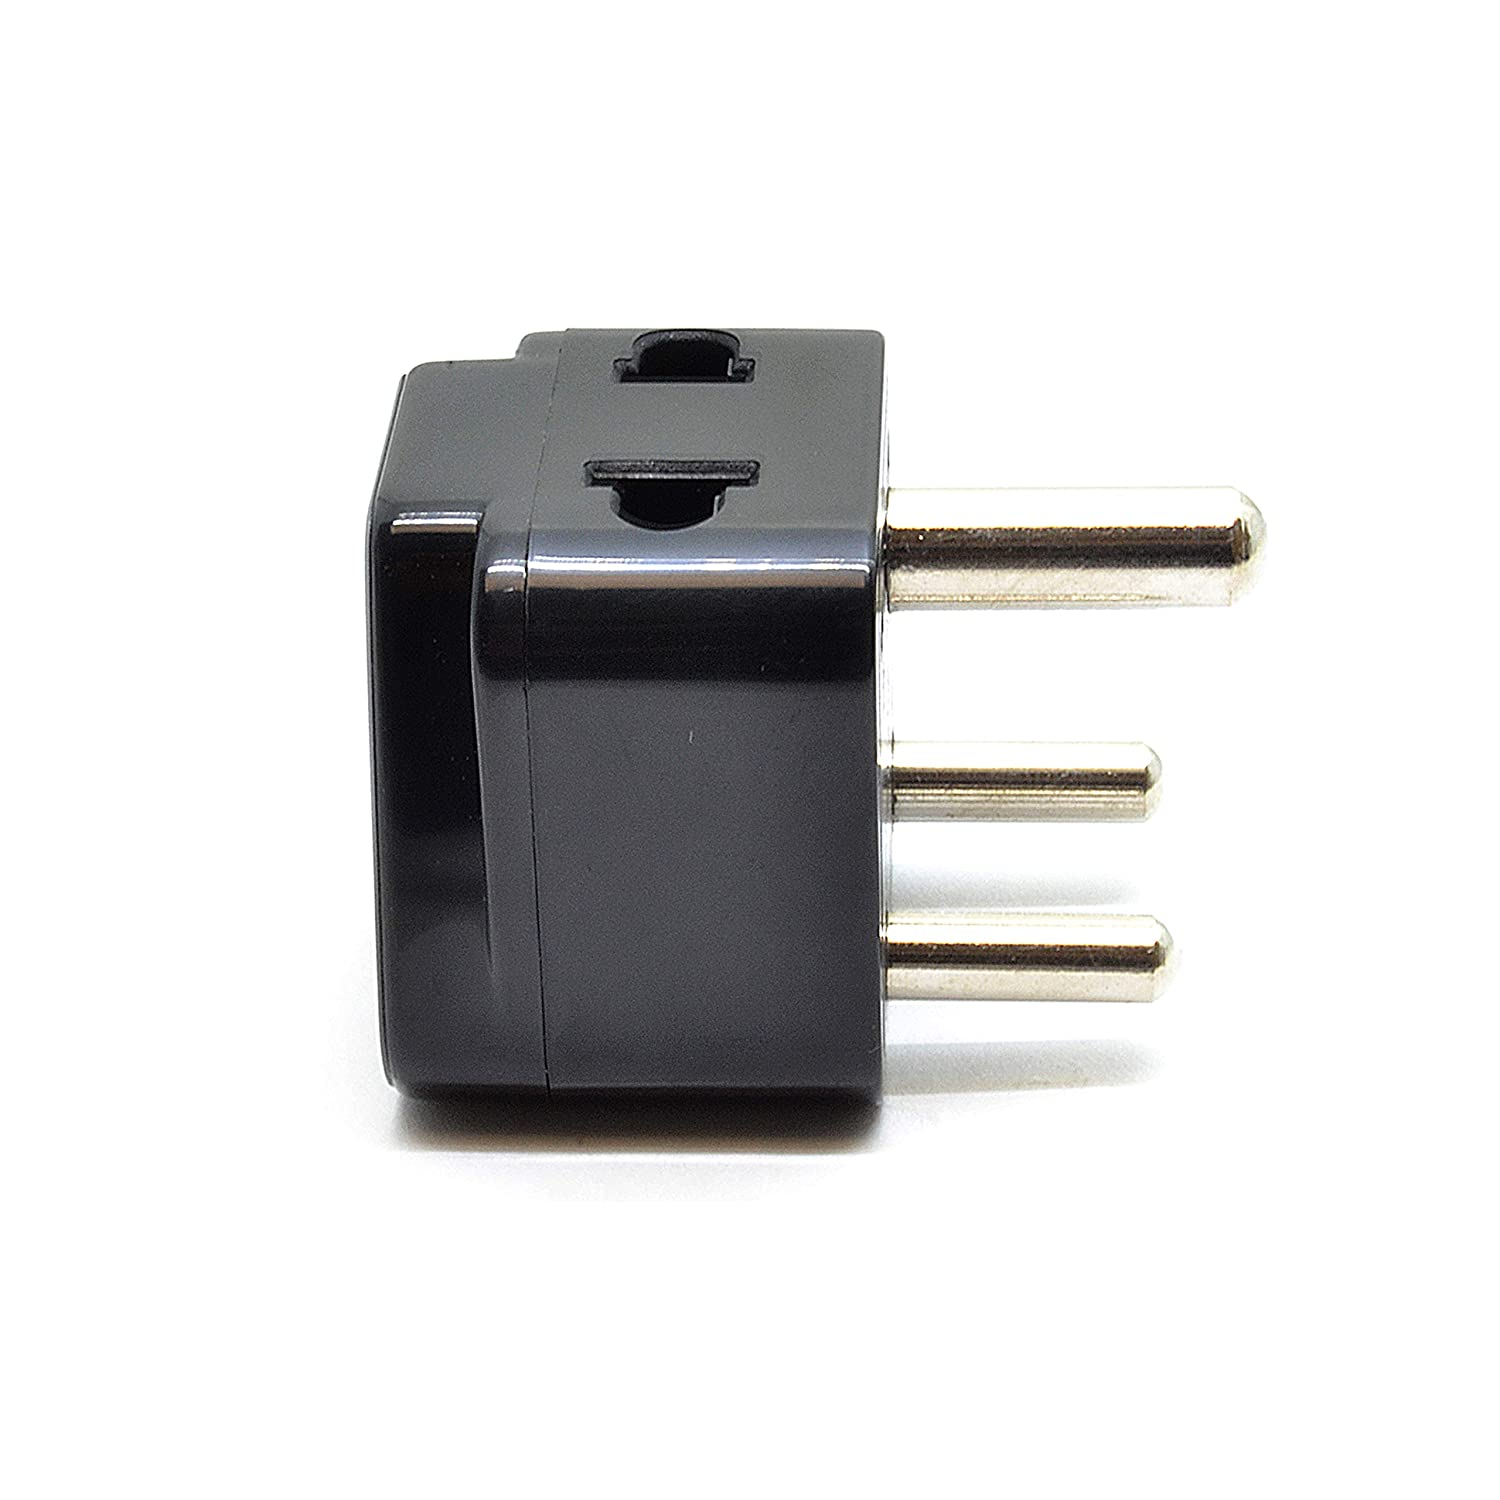 Amazon.com: OREI 2 in 1 USA to India Adapter Plug (Type D) - 4 Pack ...